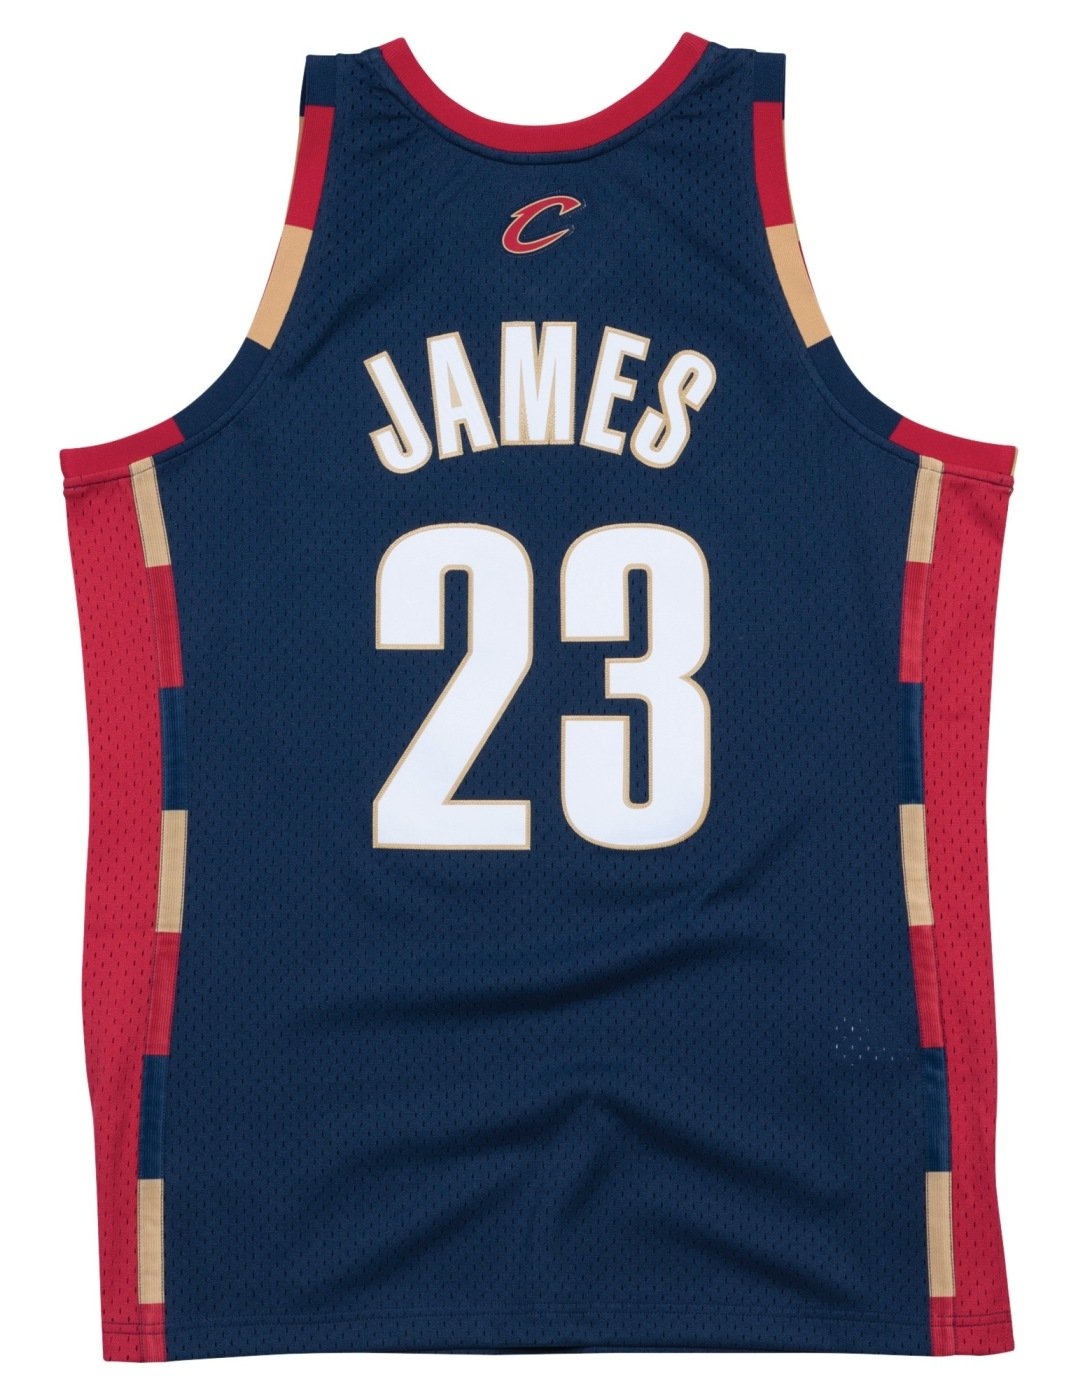 06d2b3345 Amazon.com : Lebron James Cleveland Cavaliers Mitchell and Ness Men's Navy  Throwback Jesey : Clothing